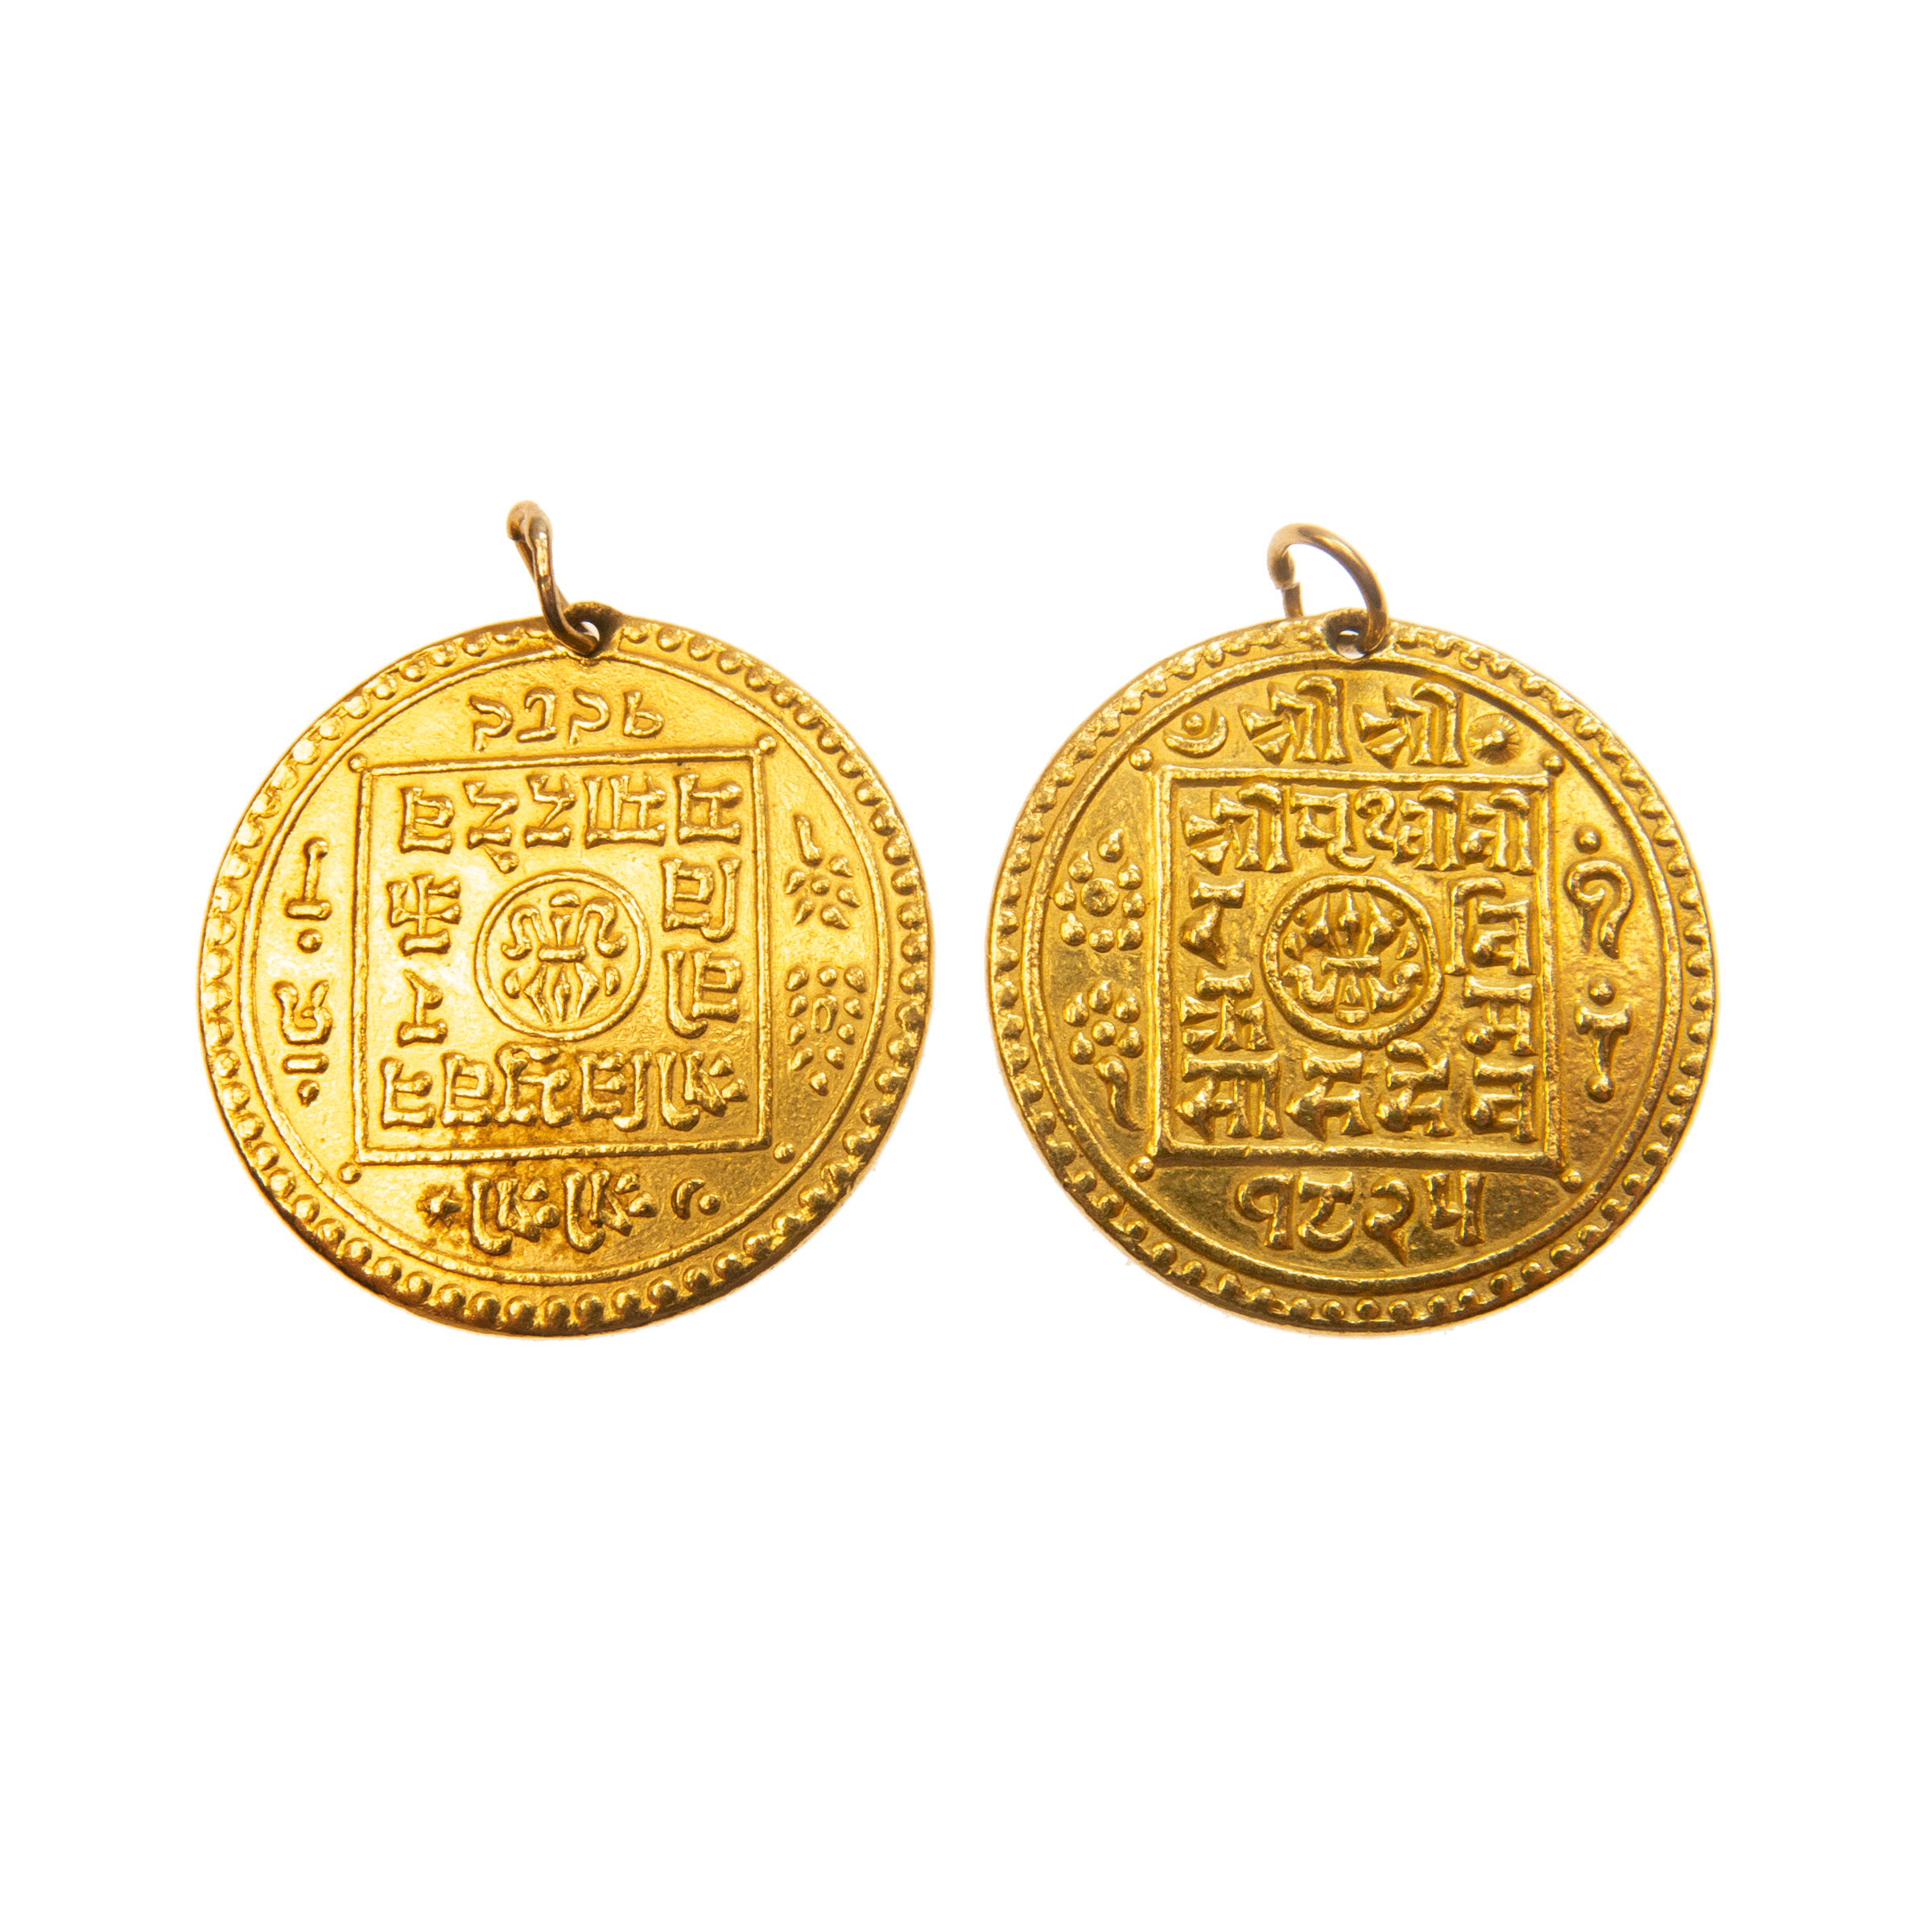 2 X 22K Yellow Gold Arabic Coins